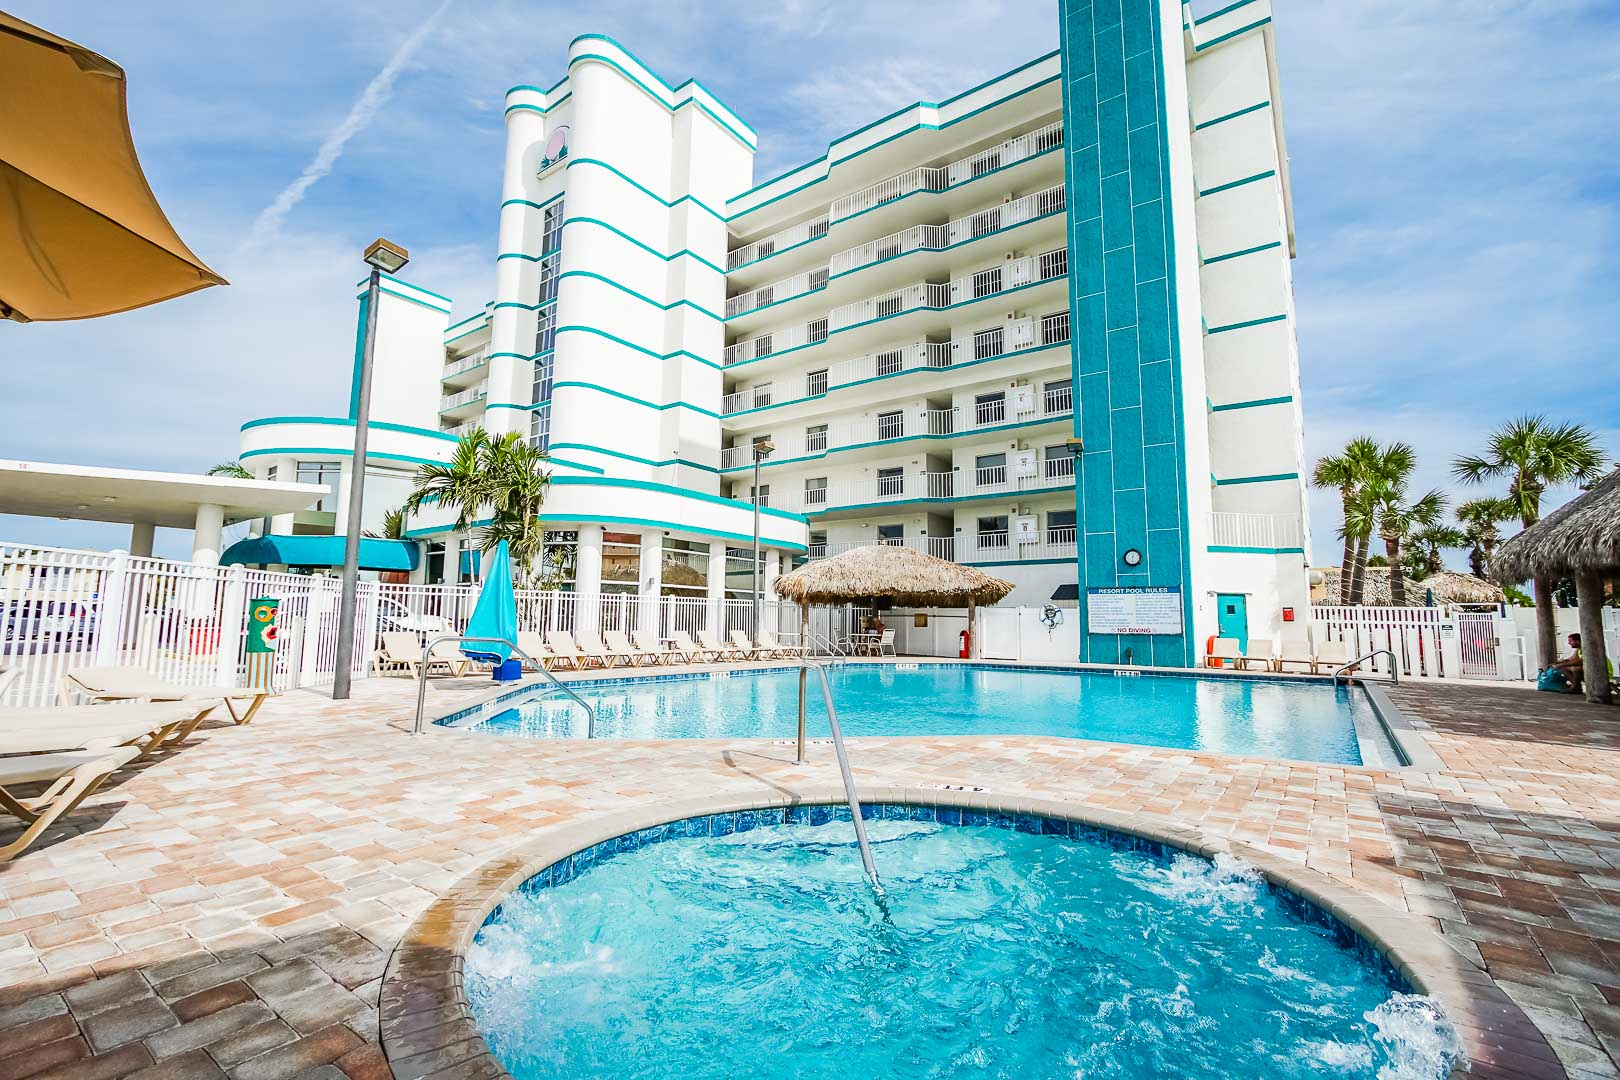 A crisp outdoor swimming pool and Jacuzzi at VRI's Discovery Beach Resort in Cocoa Beach, Florida.